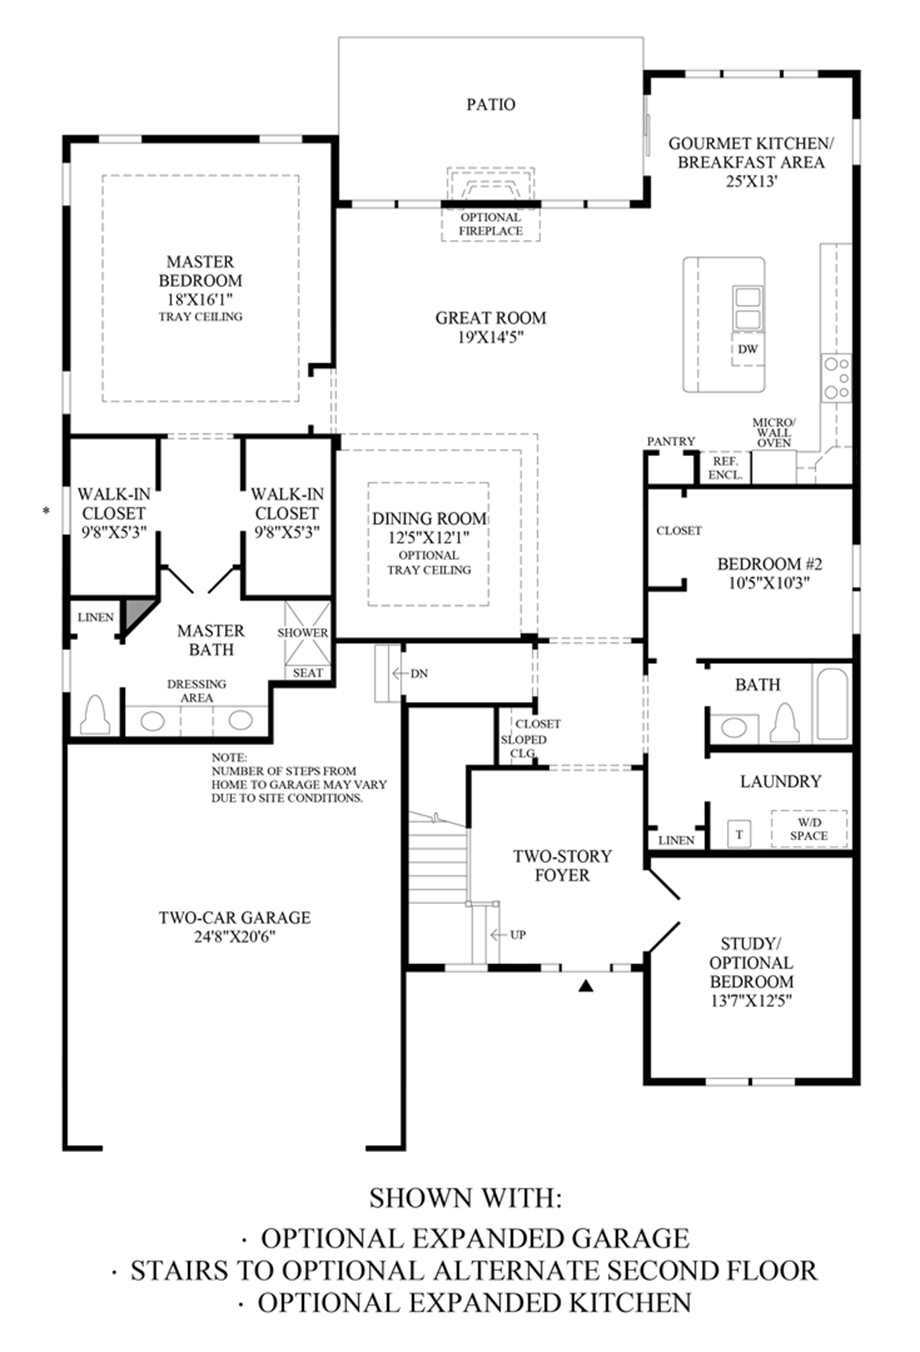 Optional Expanded Garage, Stairs to Alternate Second Floor & Expanded Kitchen